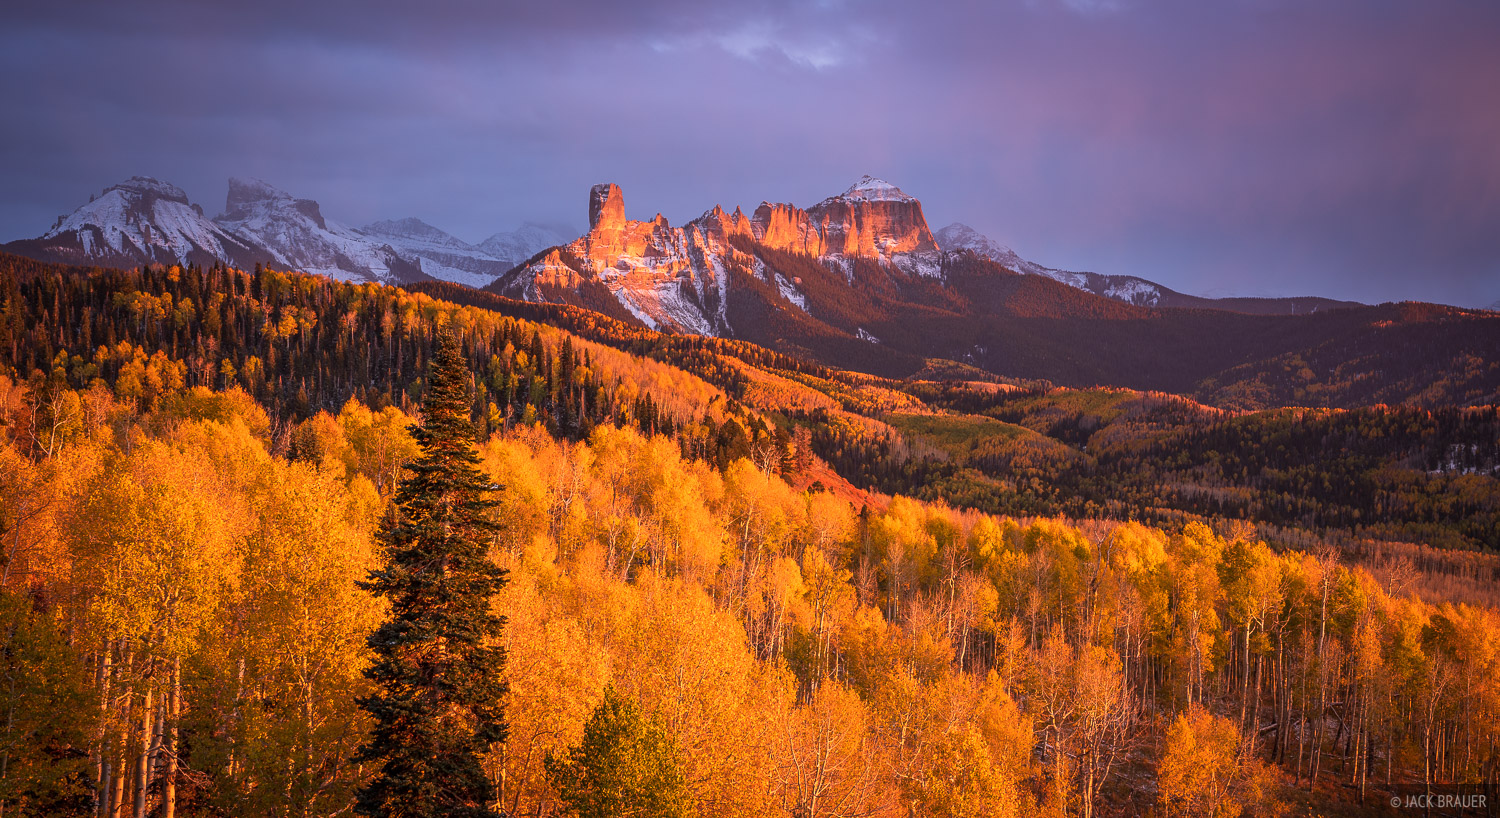 Cimarrons, Colorado, San Juan Mountains, aspens, Courthouse Mountain, Chimney Rock, autumn